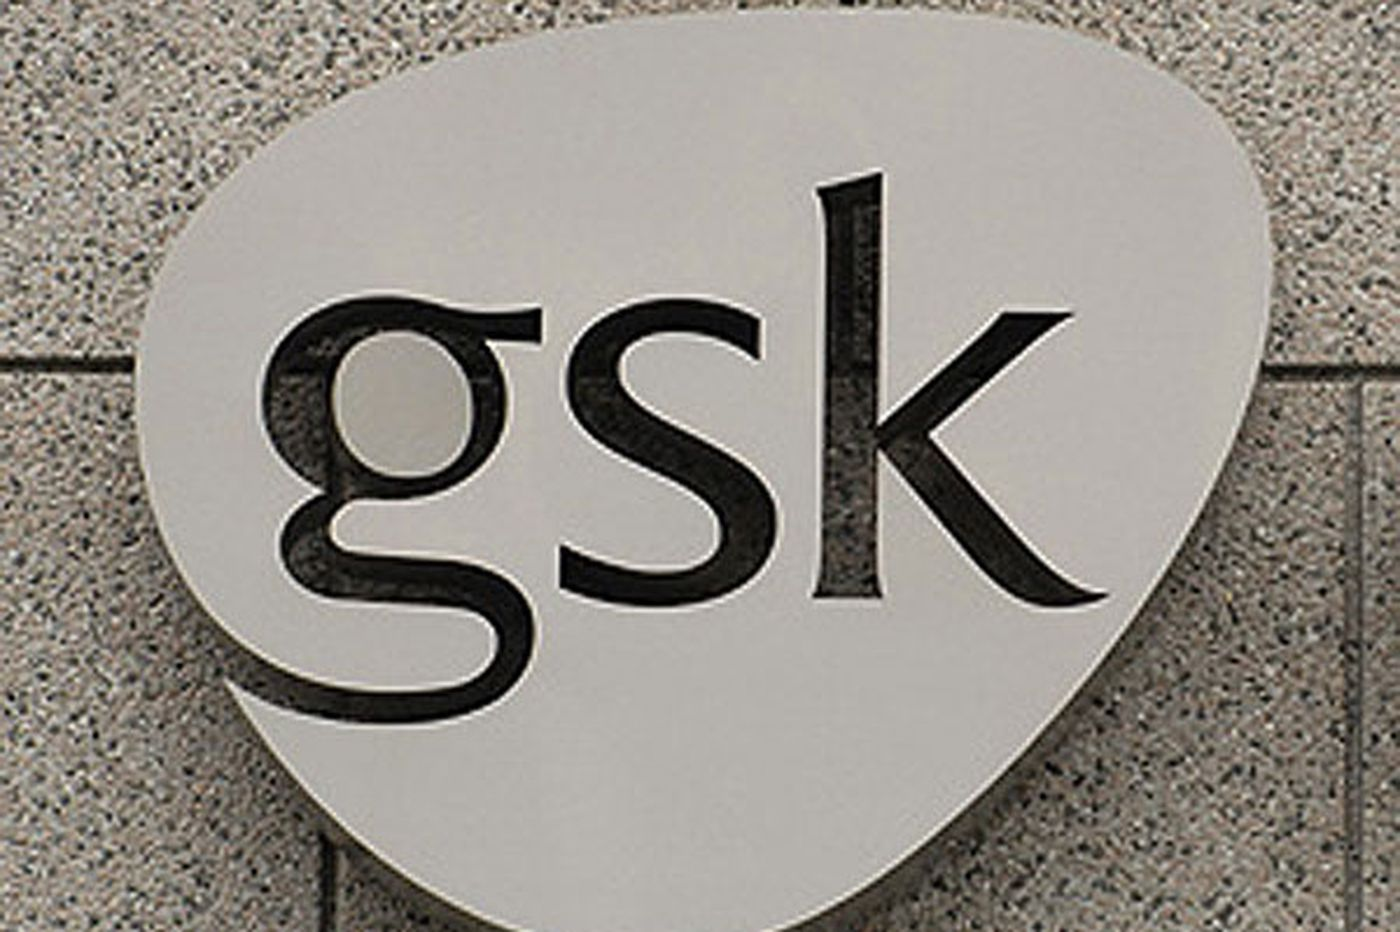 Glaxo moving Phila. R&D jobs to Maryland